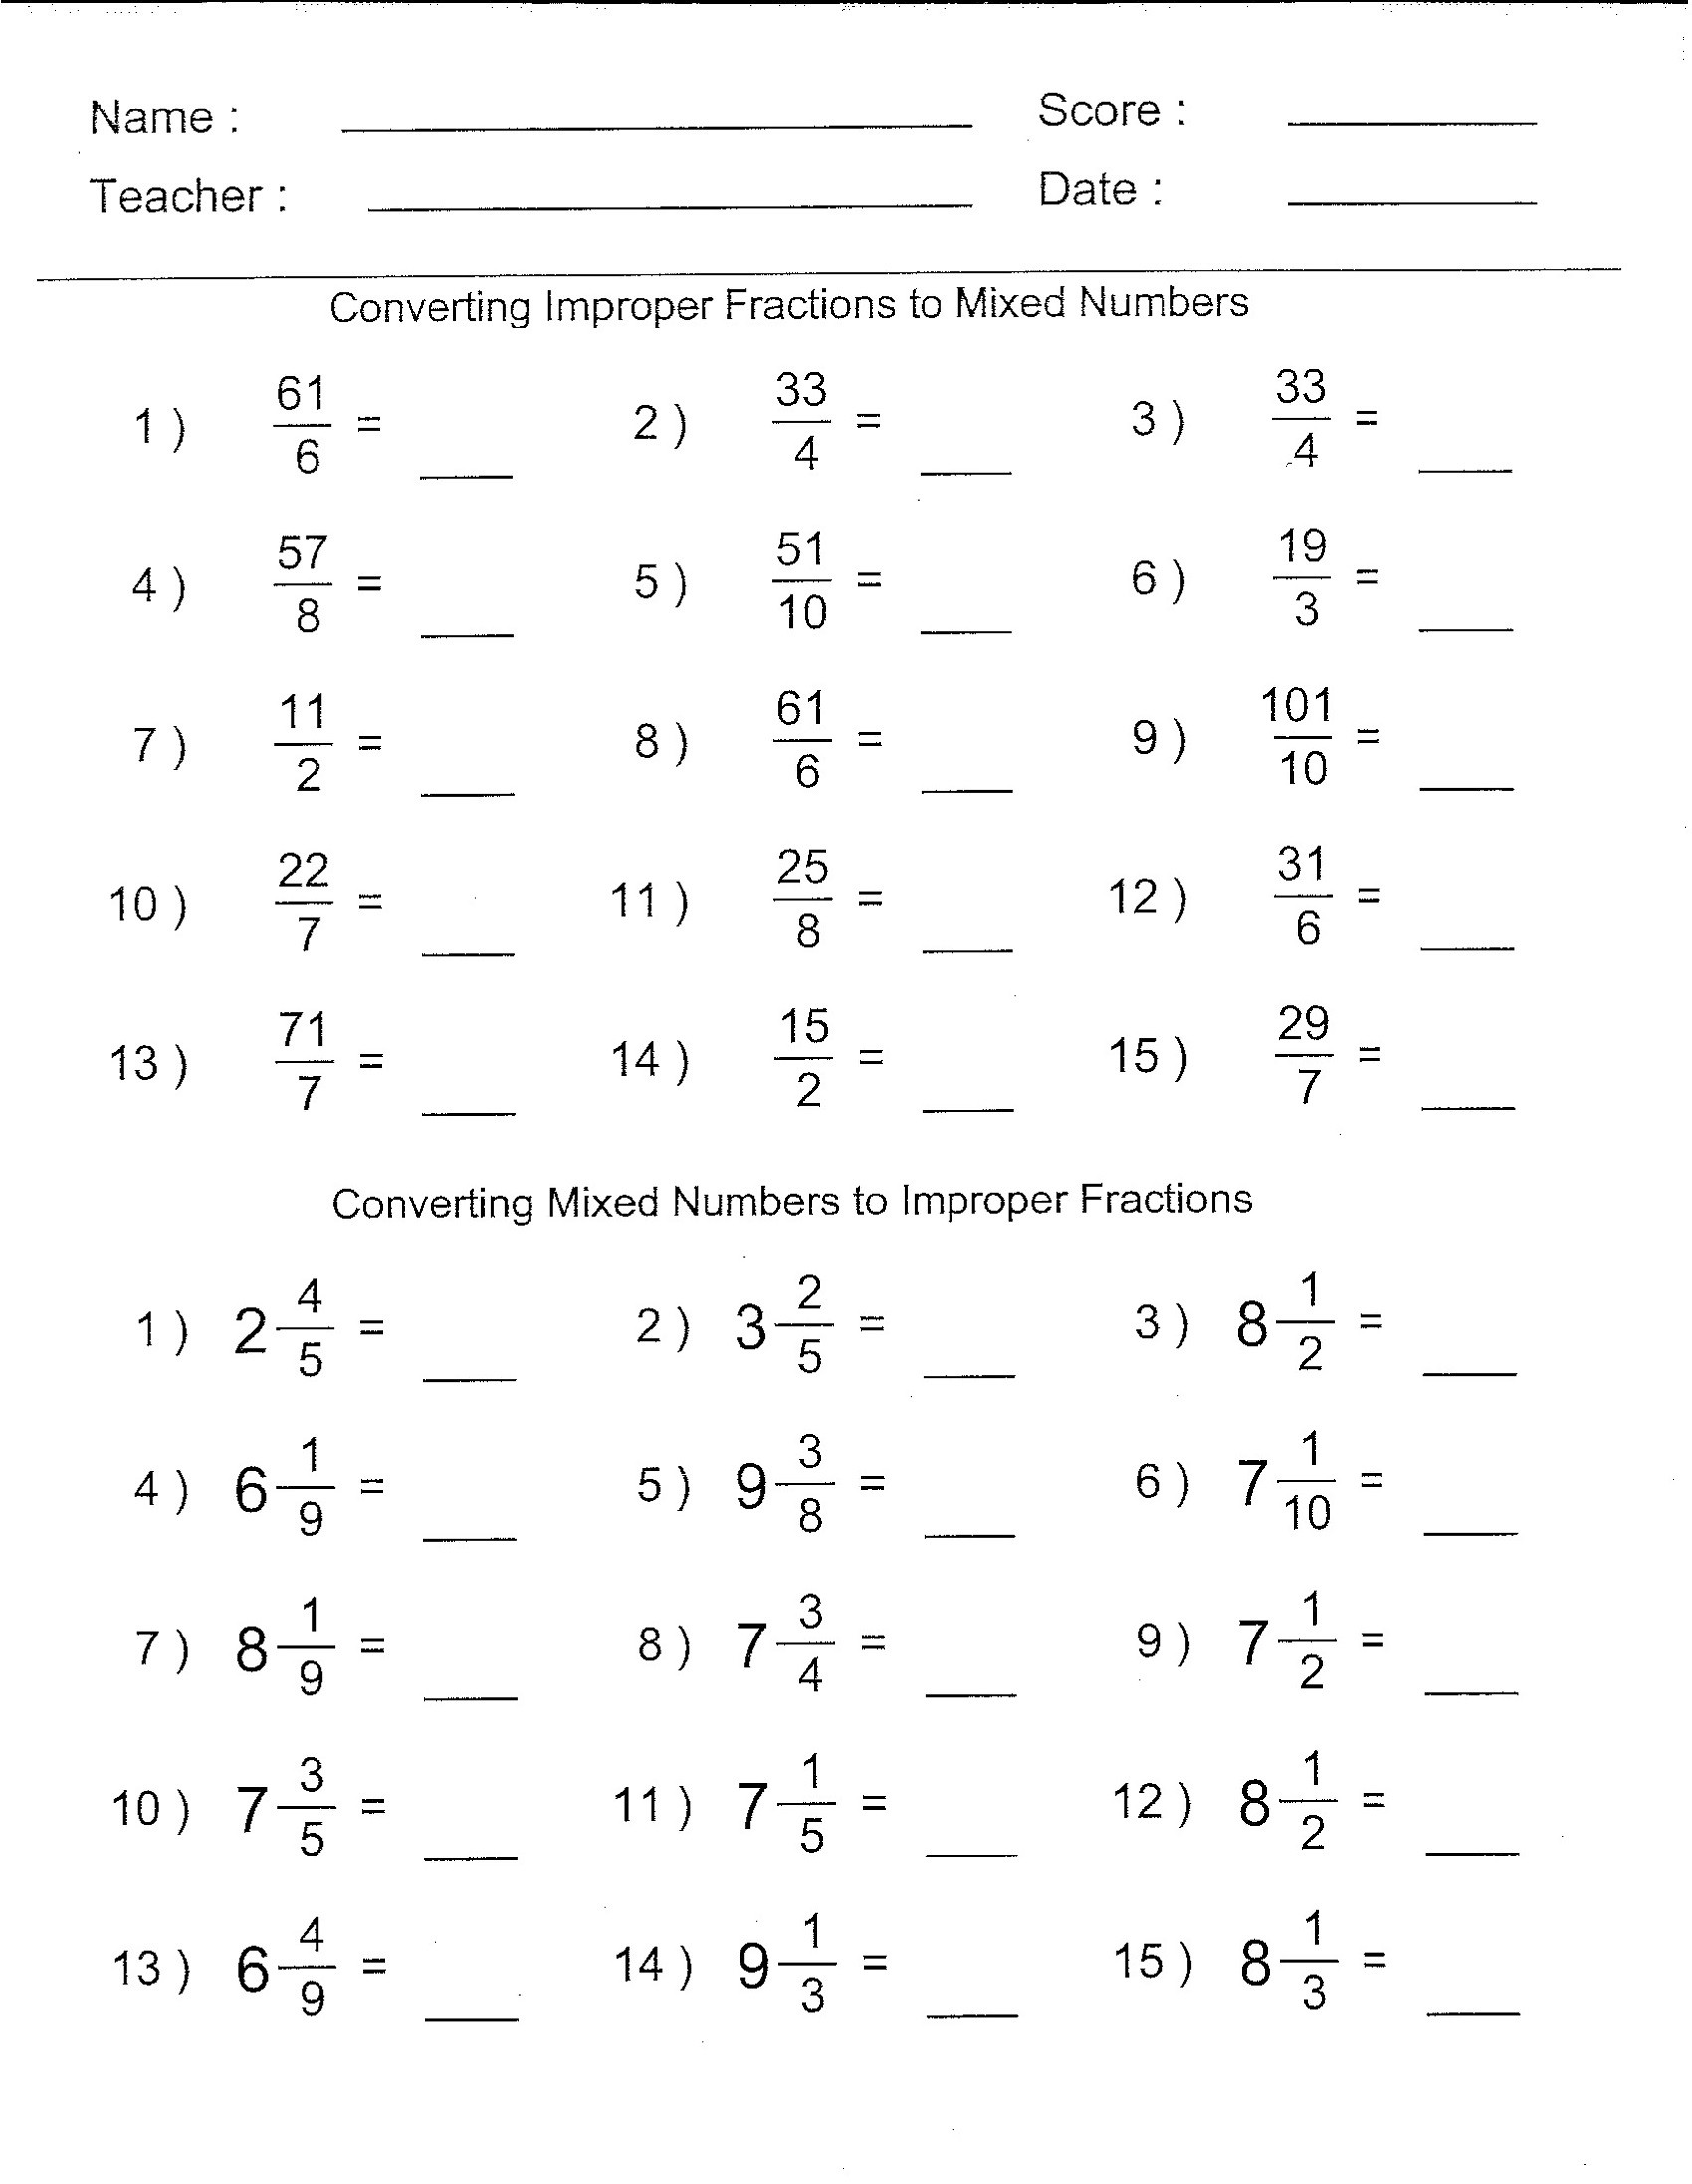 Probability Worksheet 6th Grade 6th Grade Algebra Test Dr Seuss Math Worksheets Grade 4 Drug